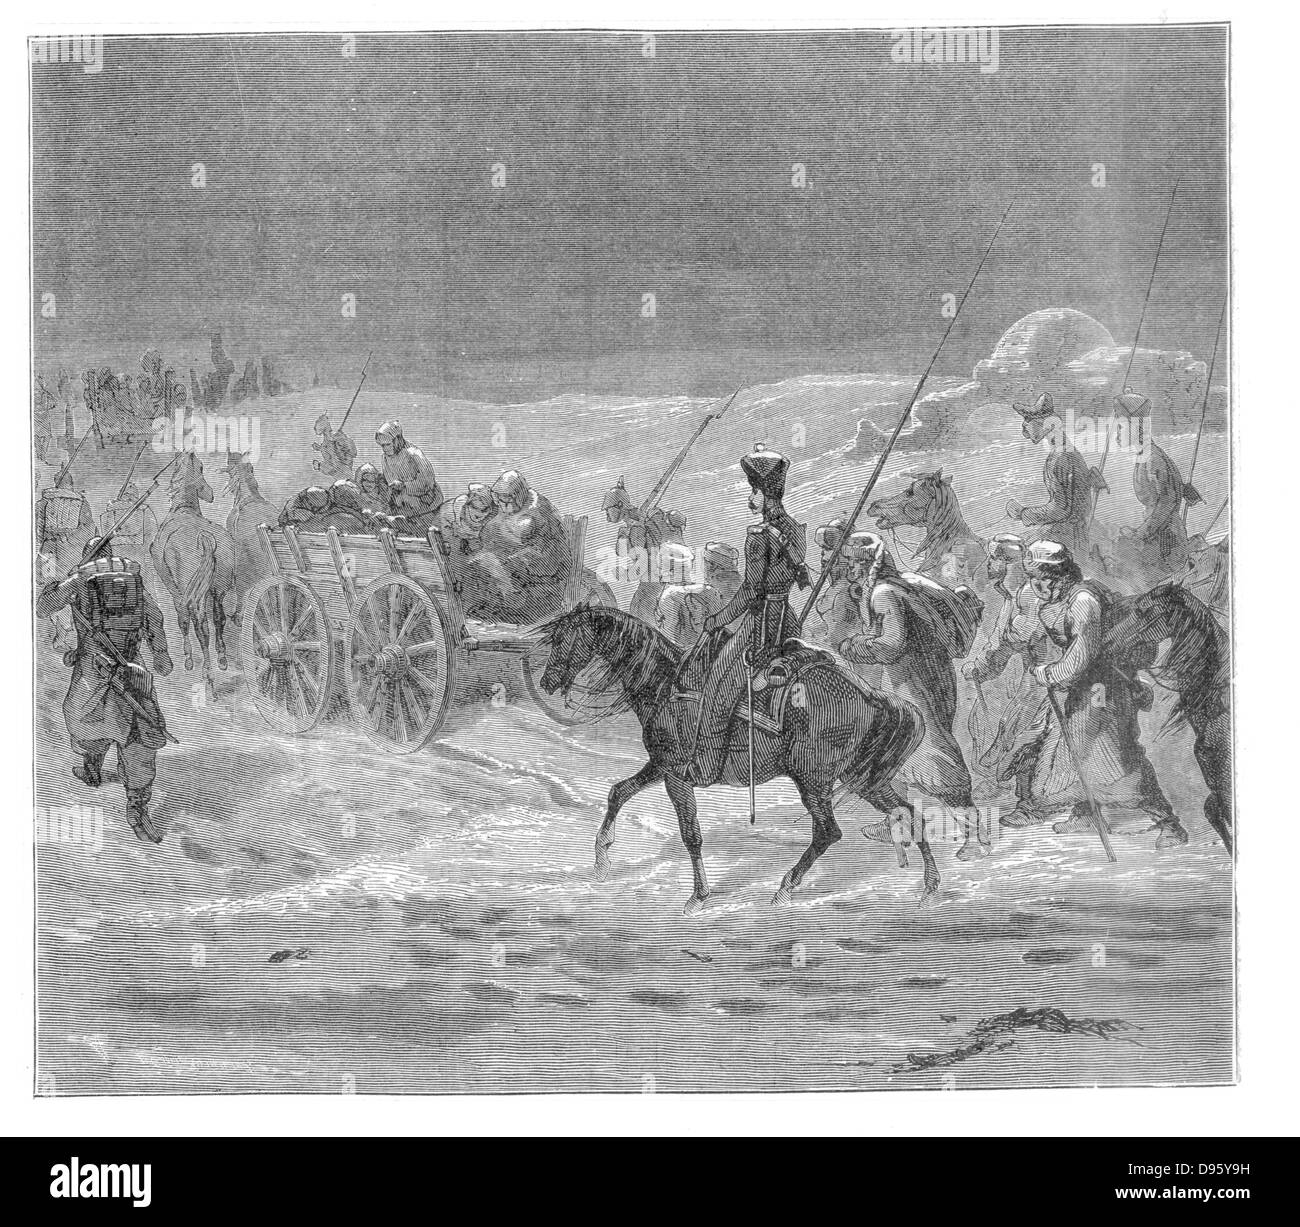 Prisoners on the road to exile in Siberia. From 'The Countries of the World', London, c1880. Engraving. - Stock Image